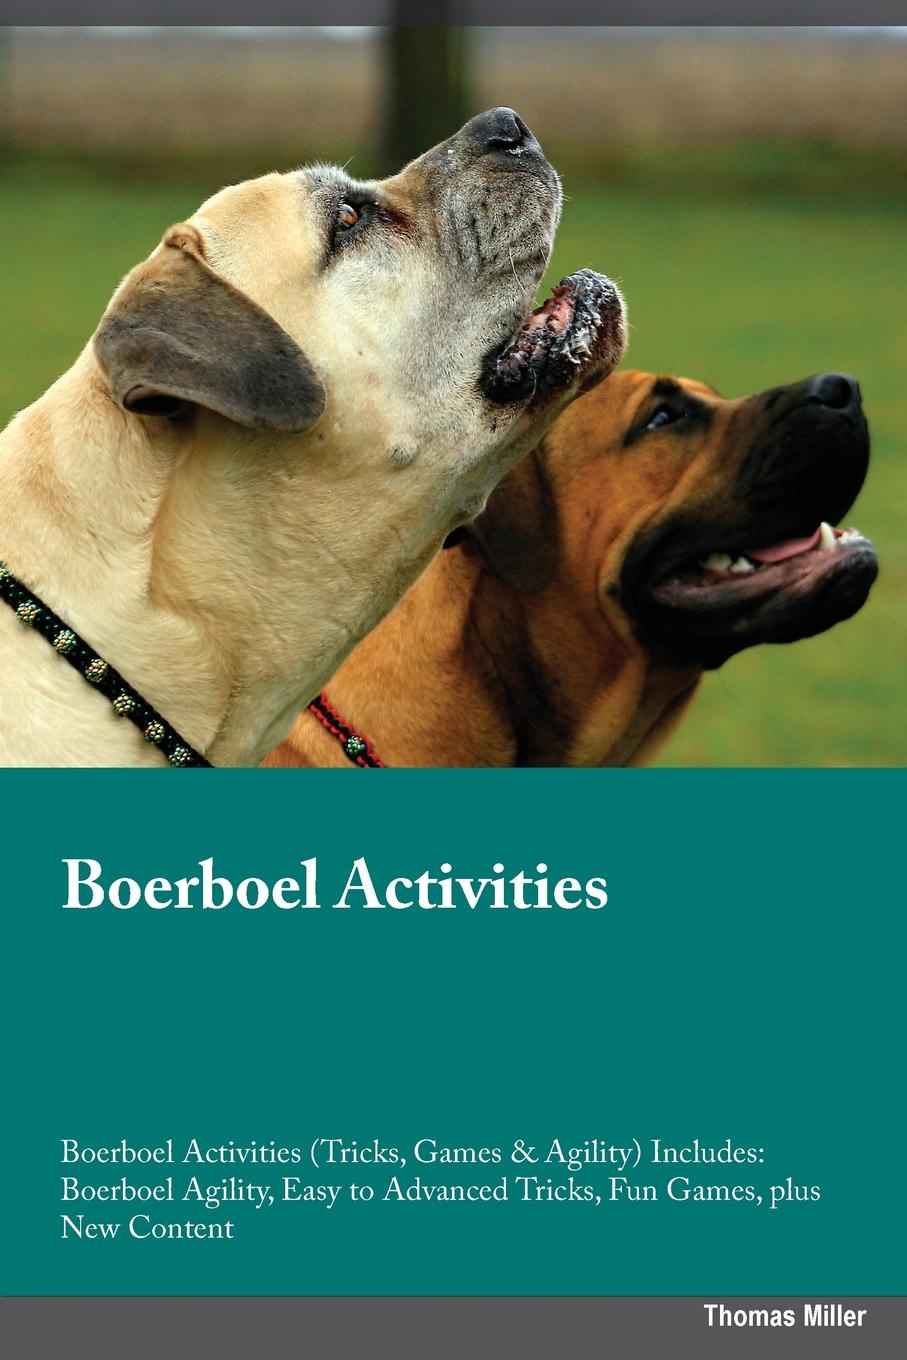 Фото - Eric Johnston Boerboel Activities Boerboel Activities (Tricks, Games & Agility) Includes. Boerboel Agility, Easy to Advanced Tricks, Fun Games, plus New Content harry holstone boerboel the boerboel dog owner s manual boerboel dog care personality grooming health costs and feeding all included